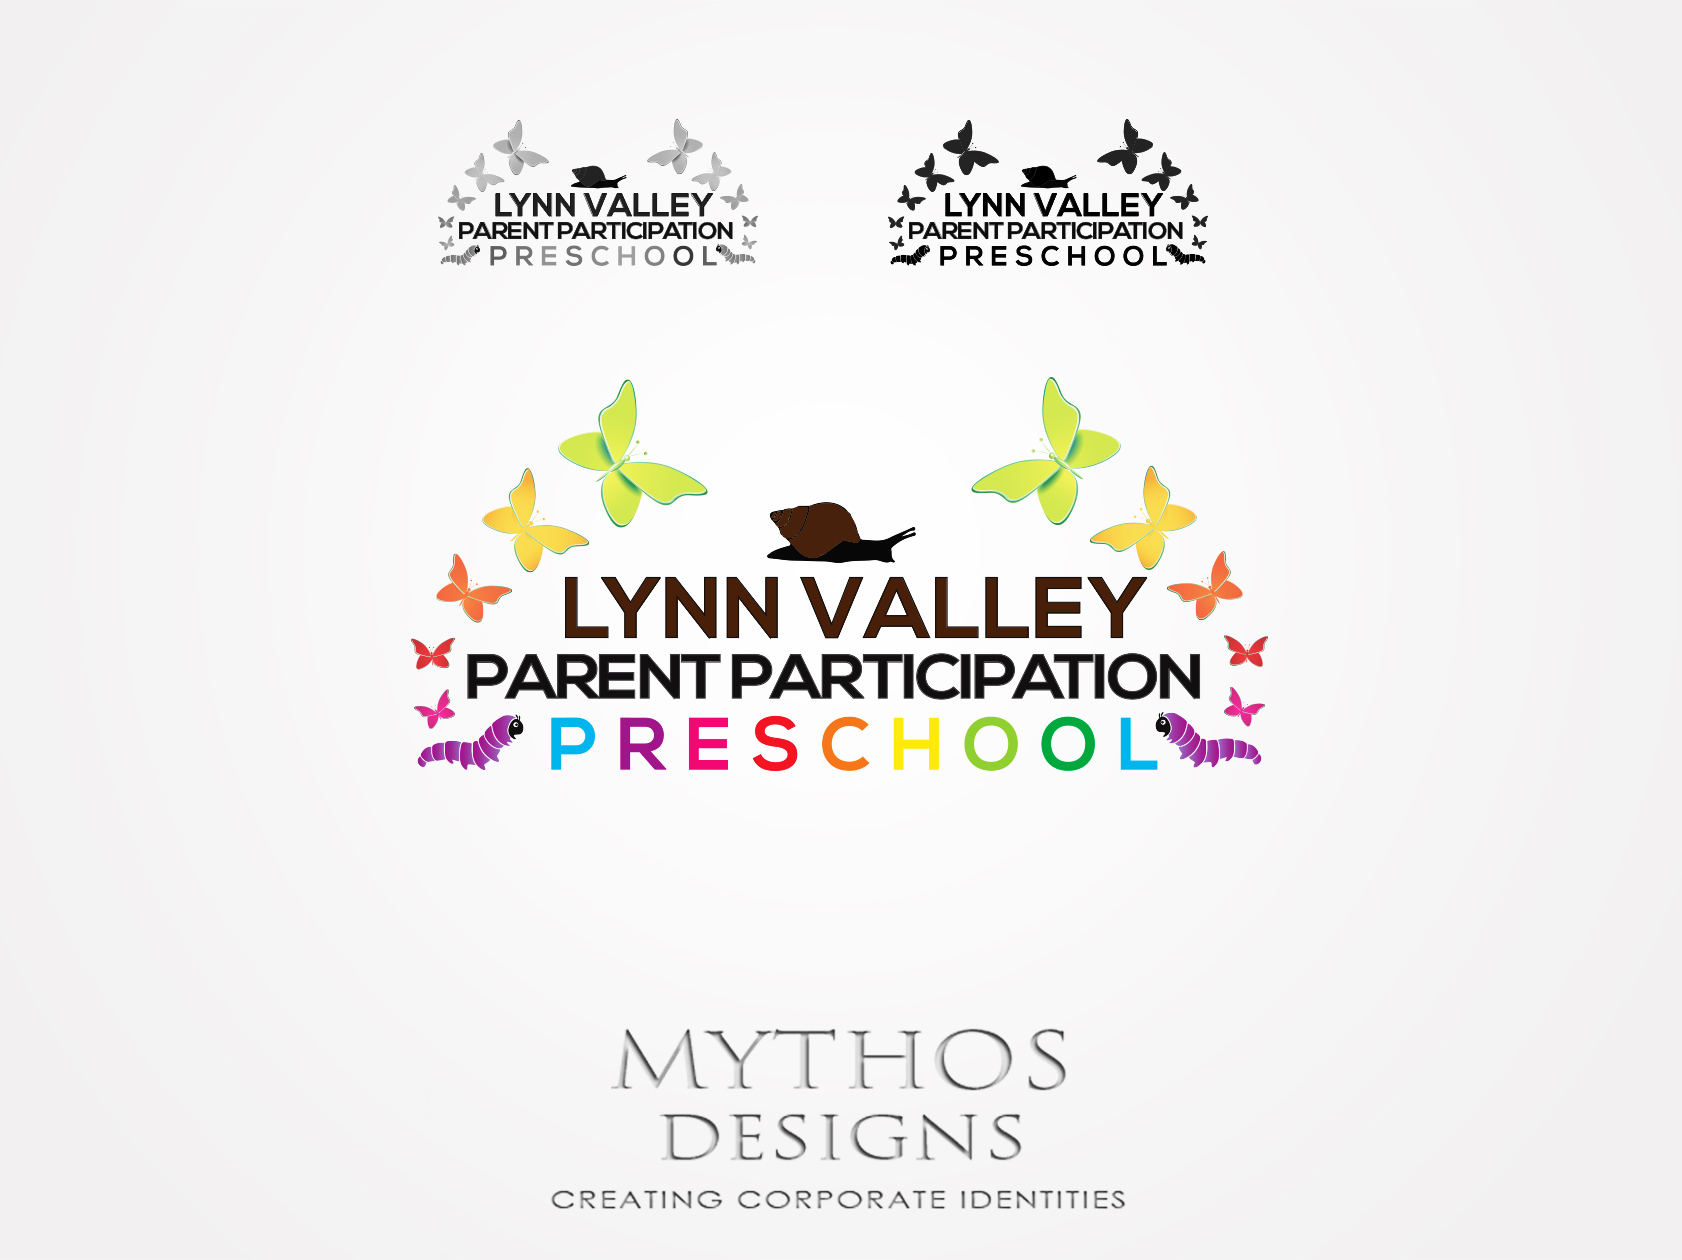 Logo Design by Mythos Designs - Entry No. 92 in the Logo Design Contest New Logo Design for Lynn Valley Parent Participation Preschool.